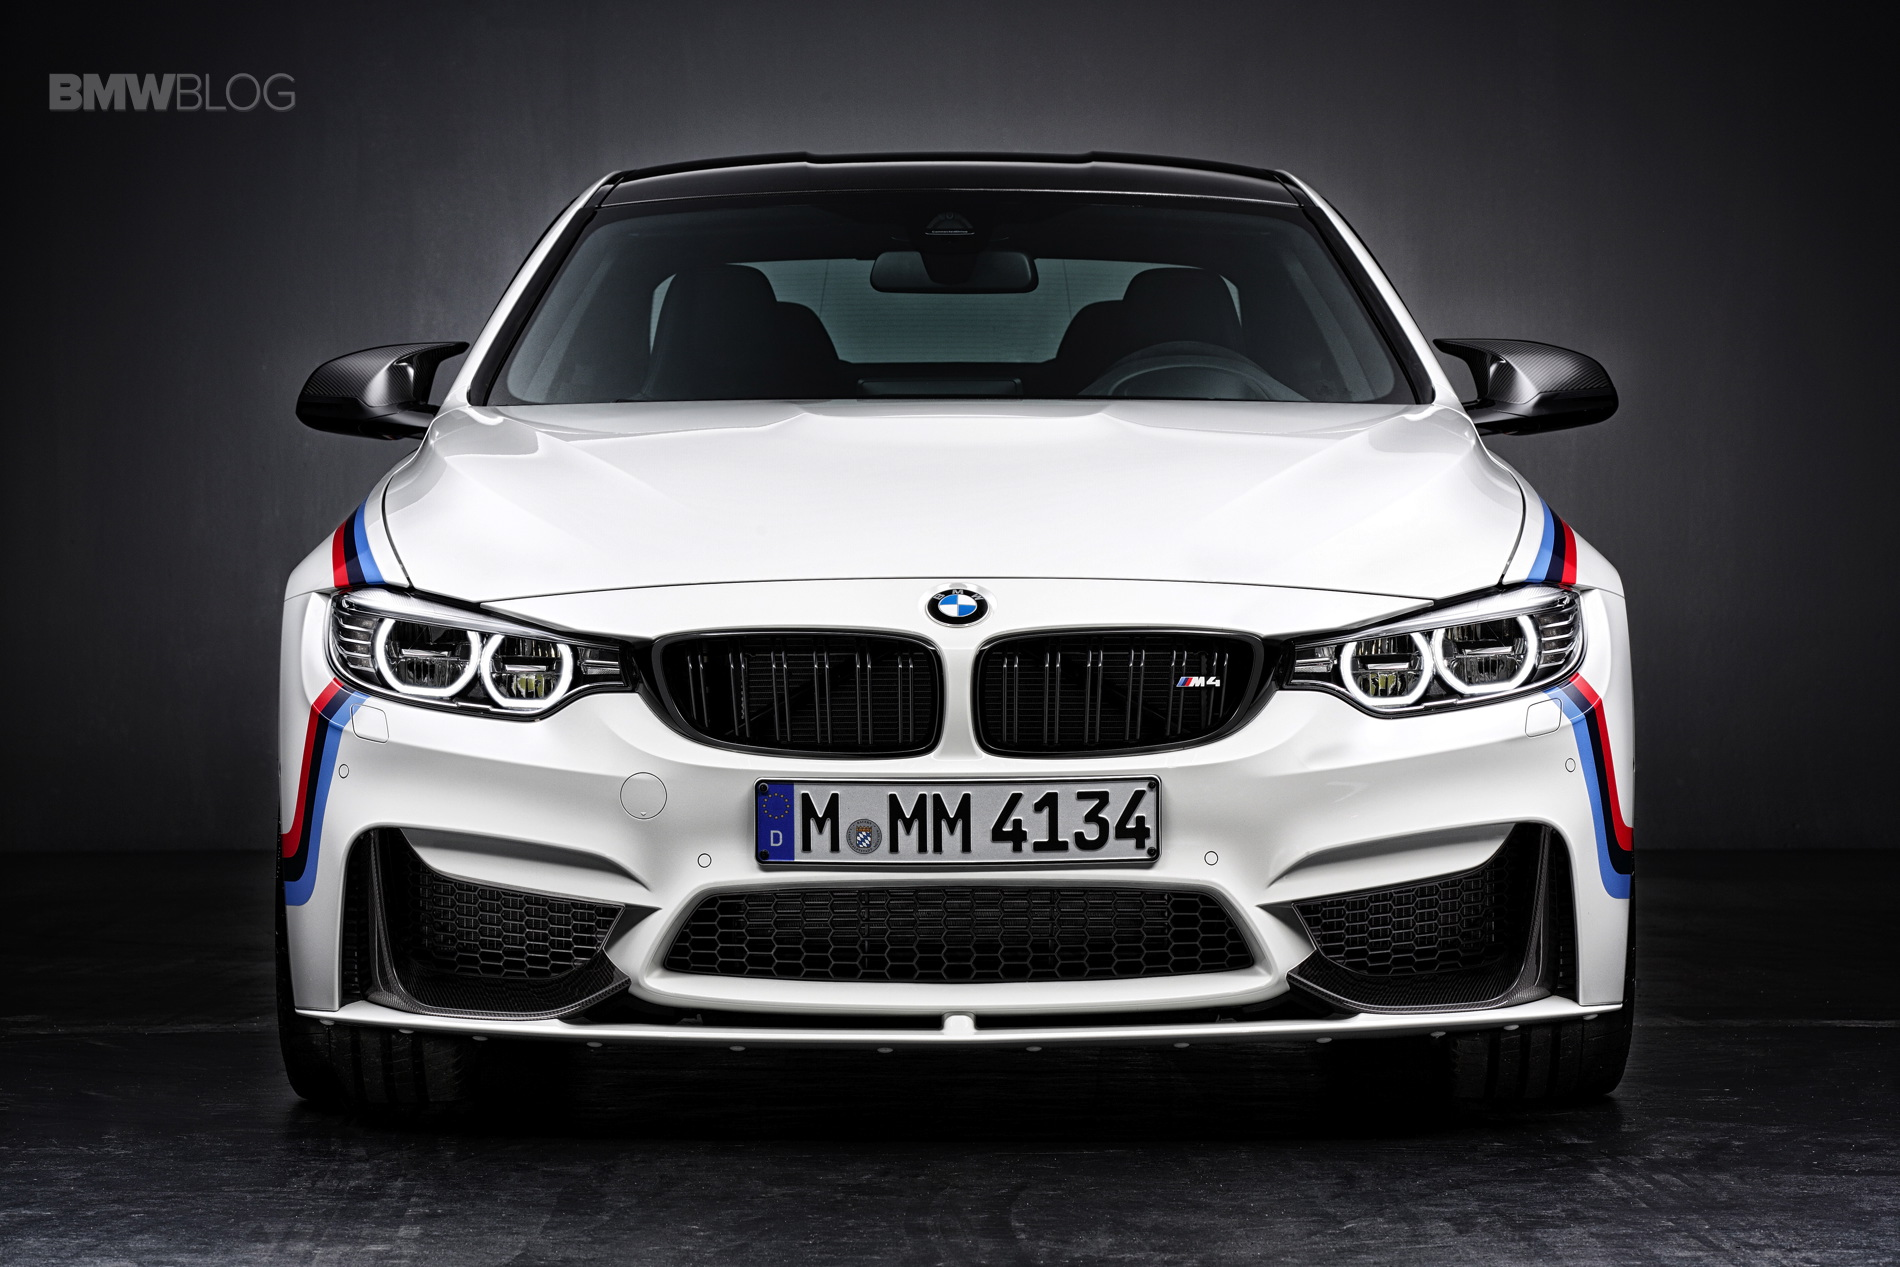 new m performance parts for bmw m3 bmw m4 coupe and bmw. Black Bedroom Furniture Sets. Home Design Ideas